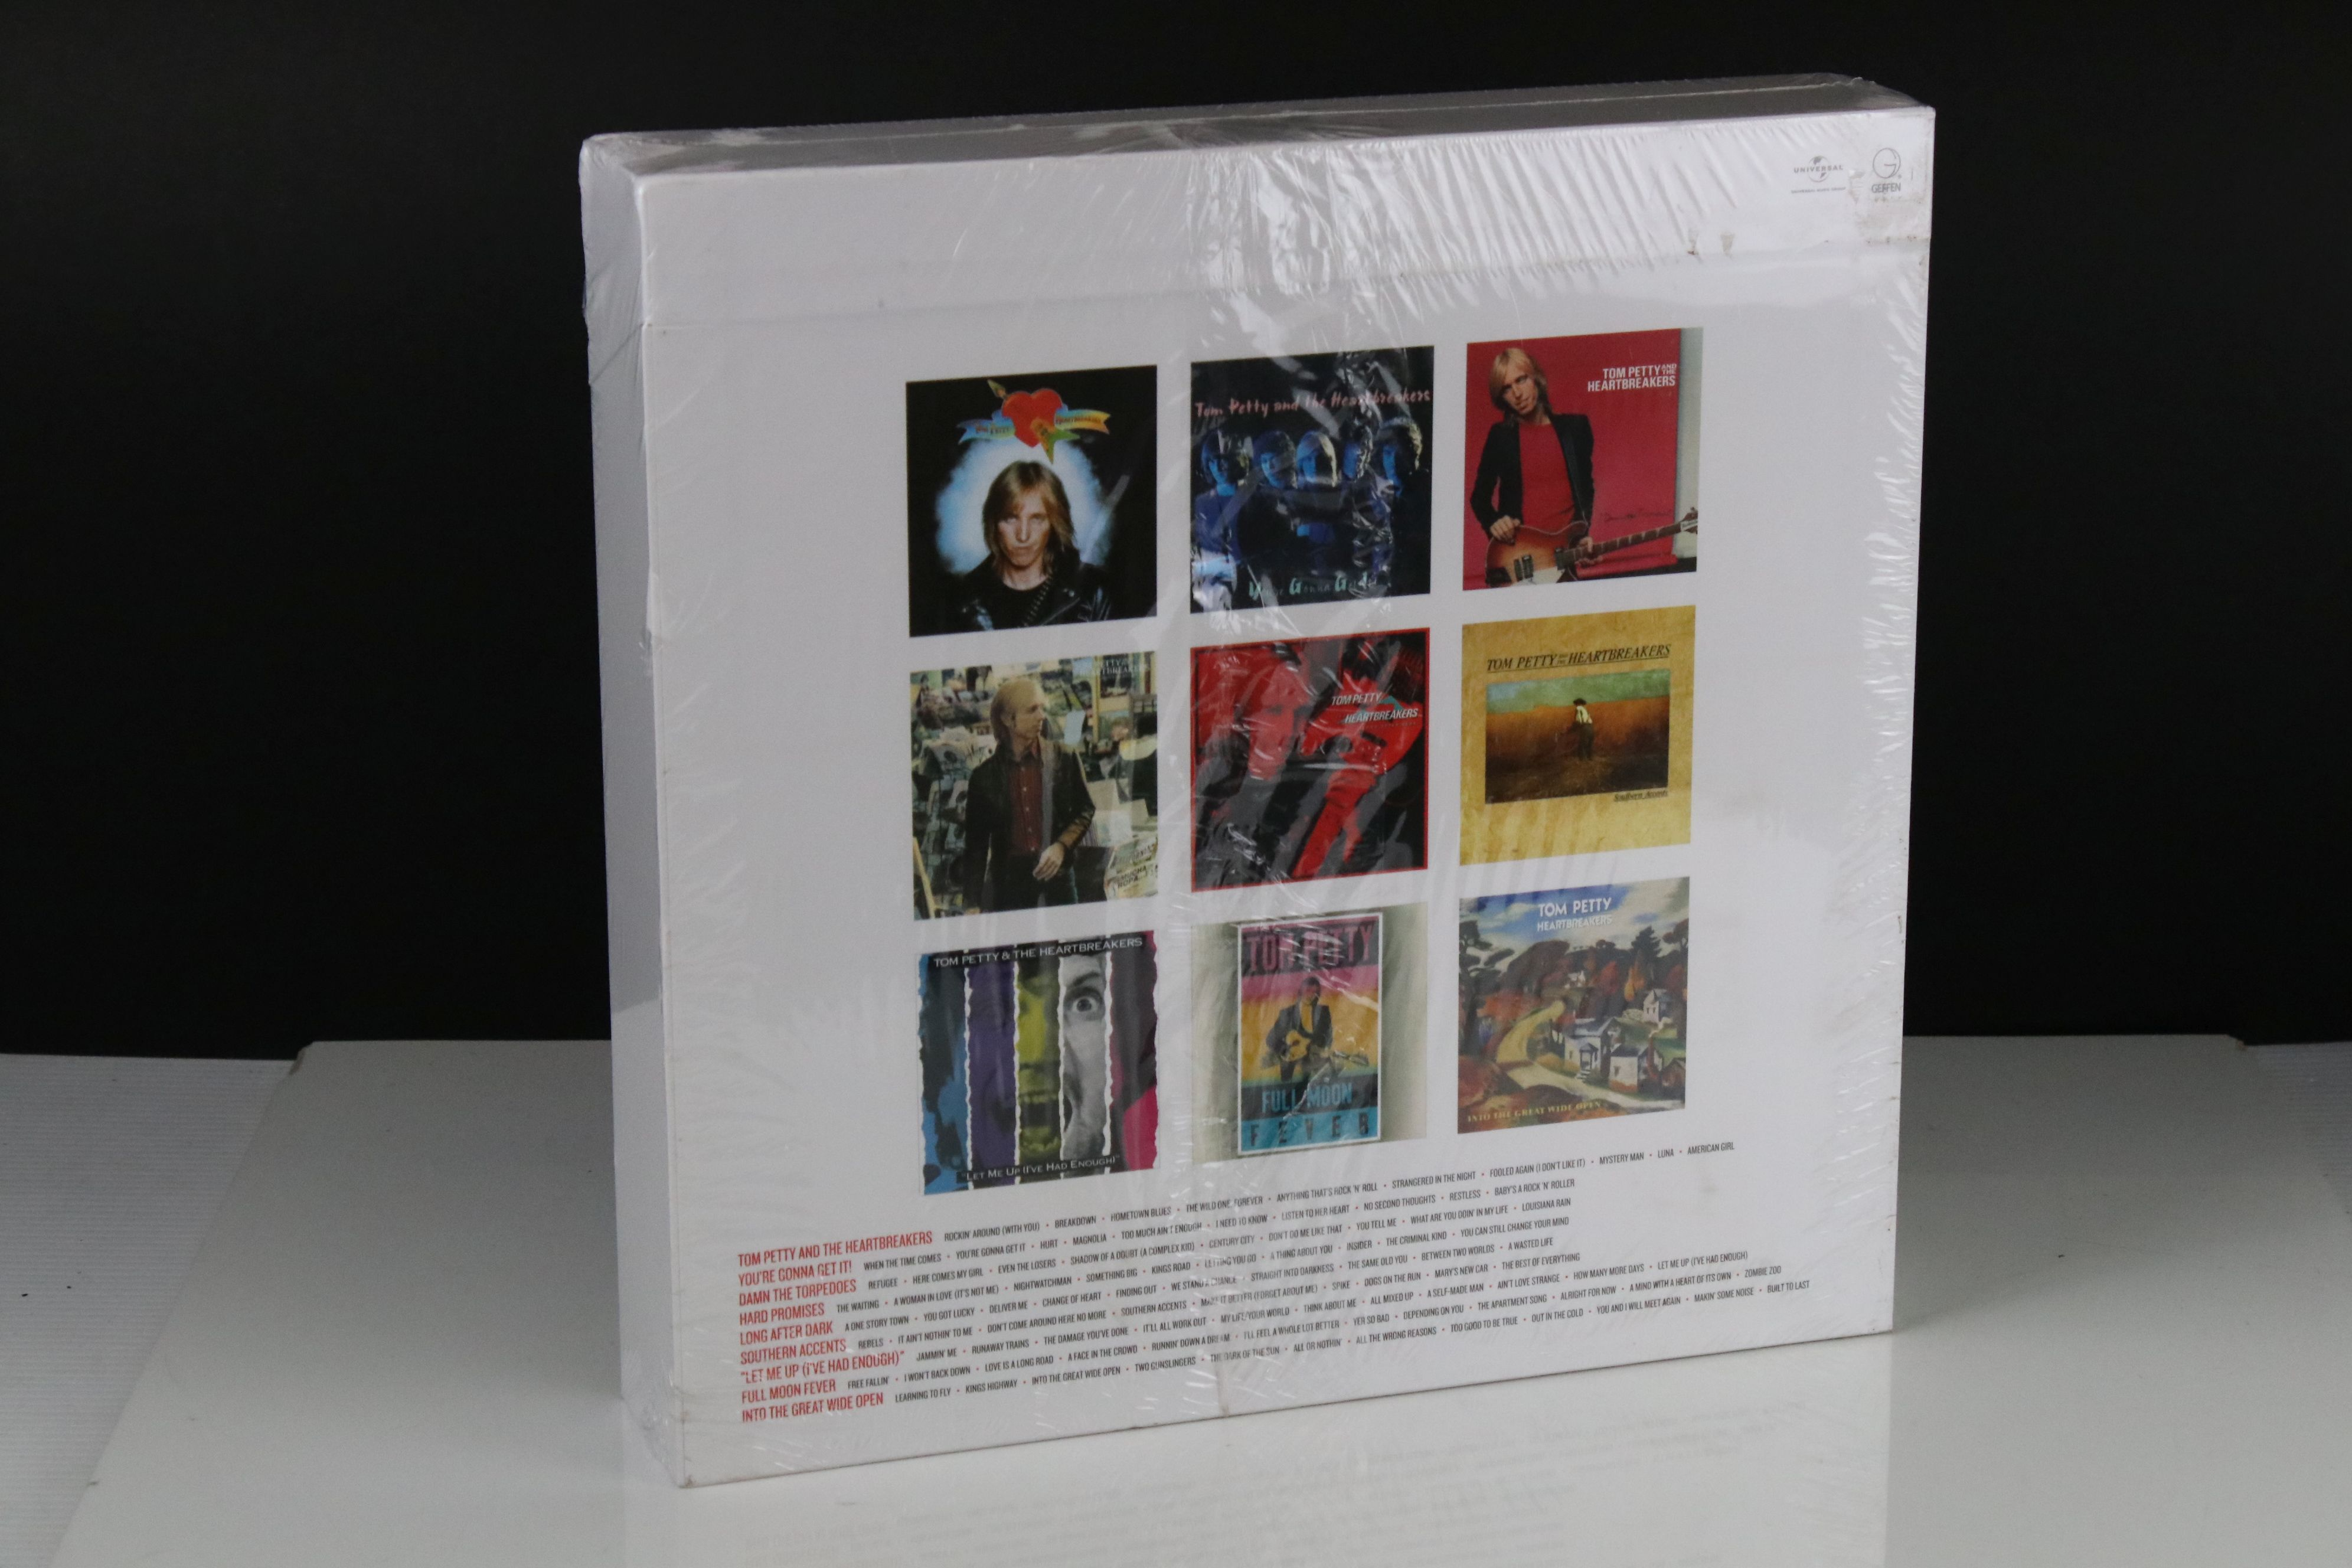 Vinyl - Tom Petty and The Heartbreakers Complete Studio Albums Volume 1 (1976-1991) Box Set, sealed - Image 2 of 3